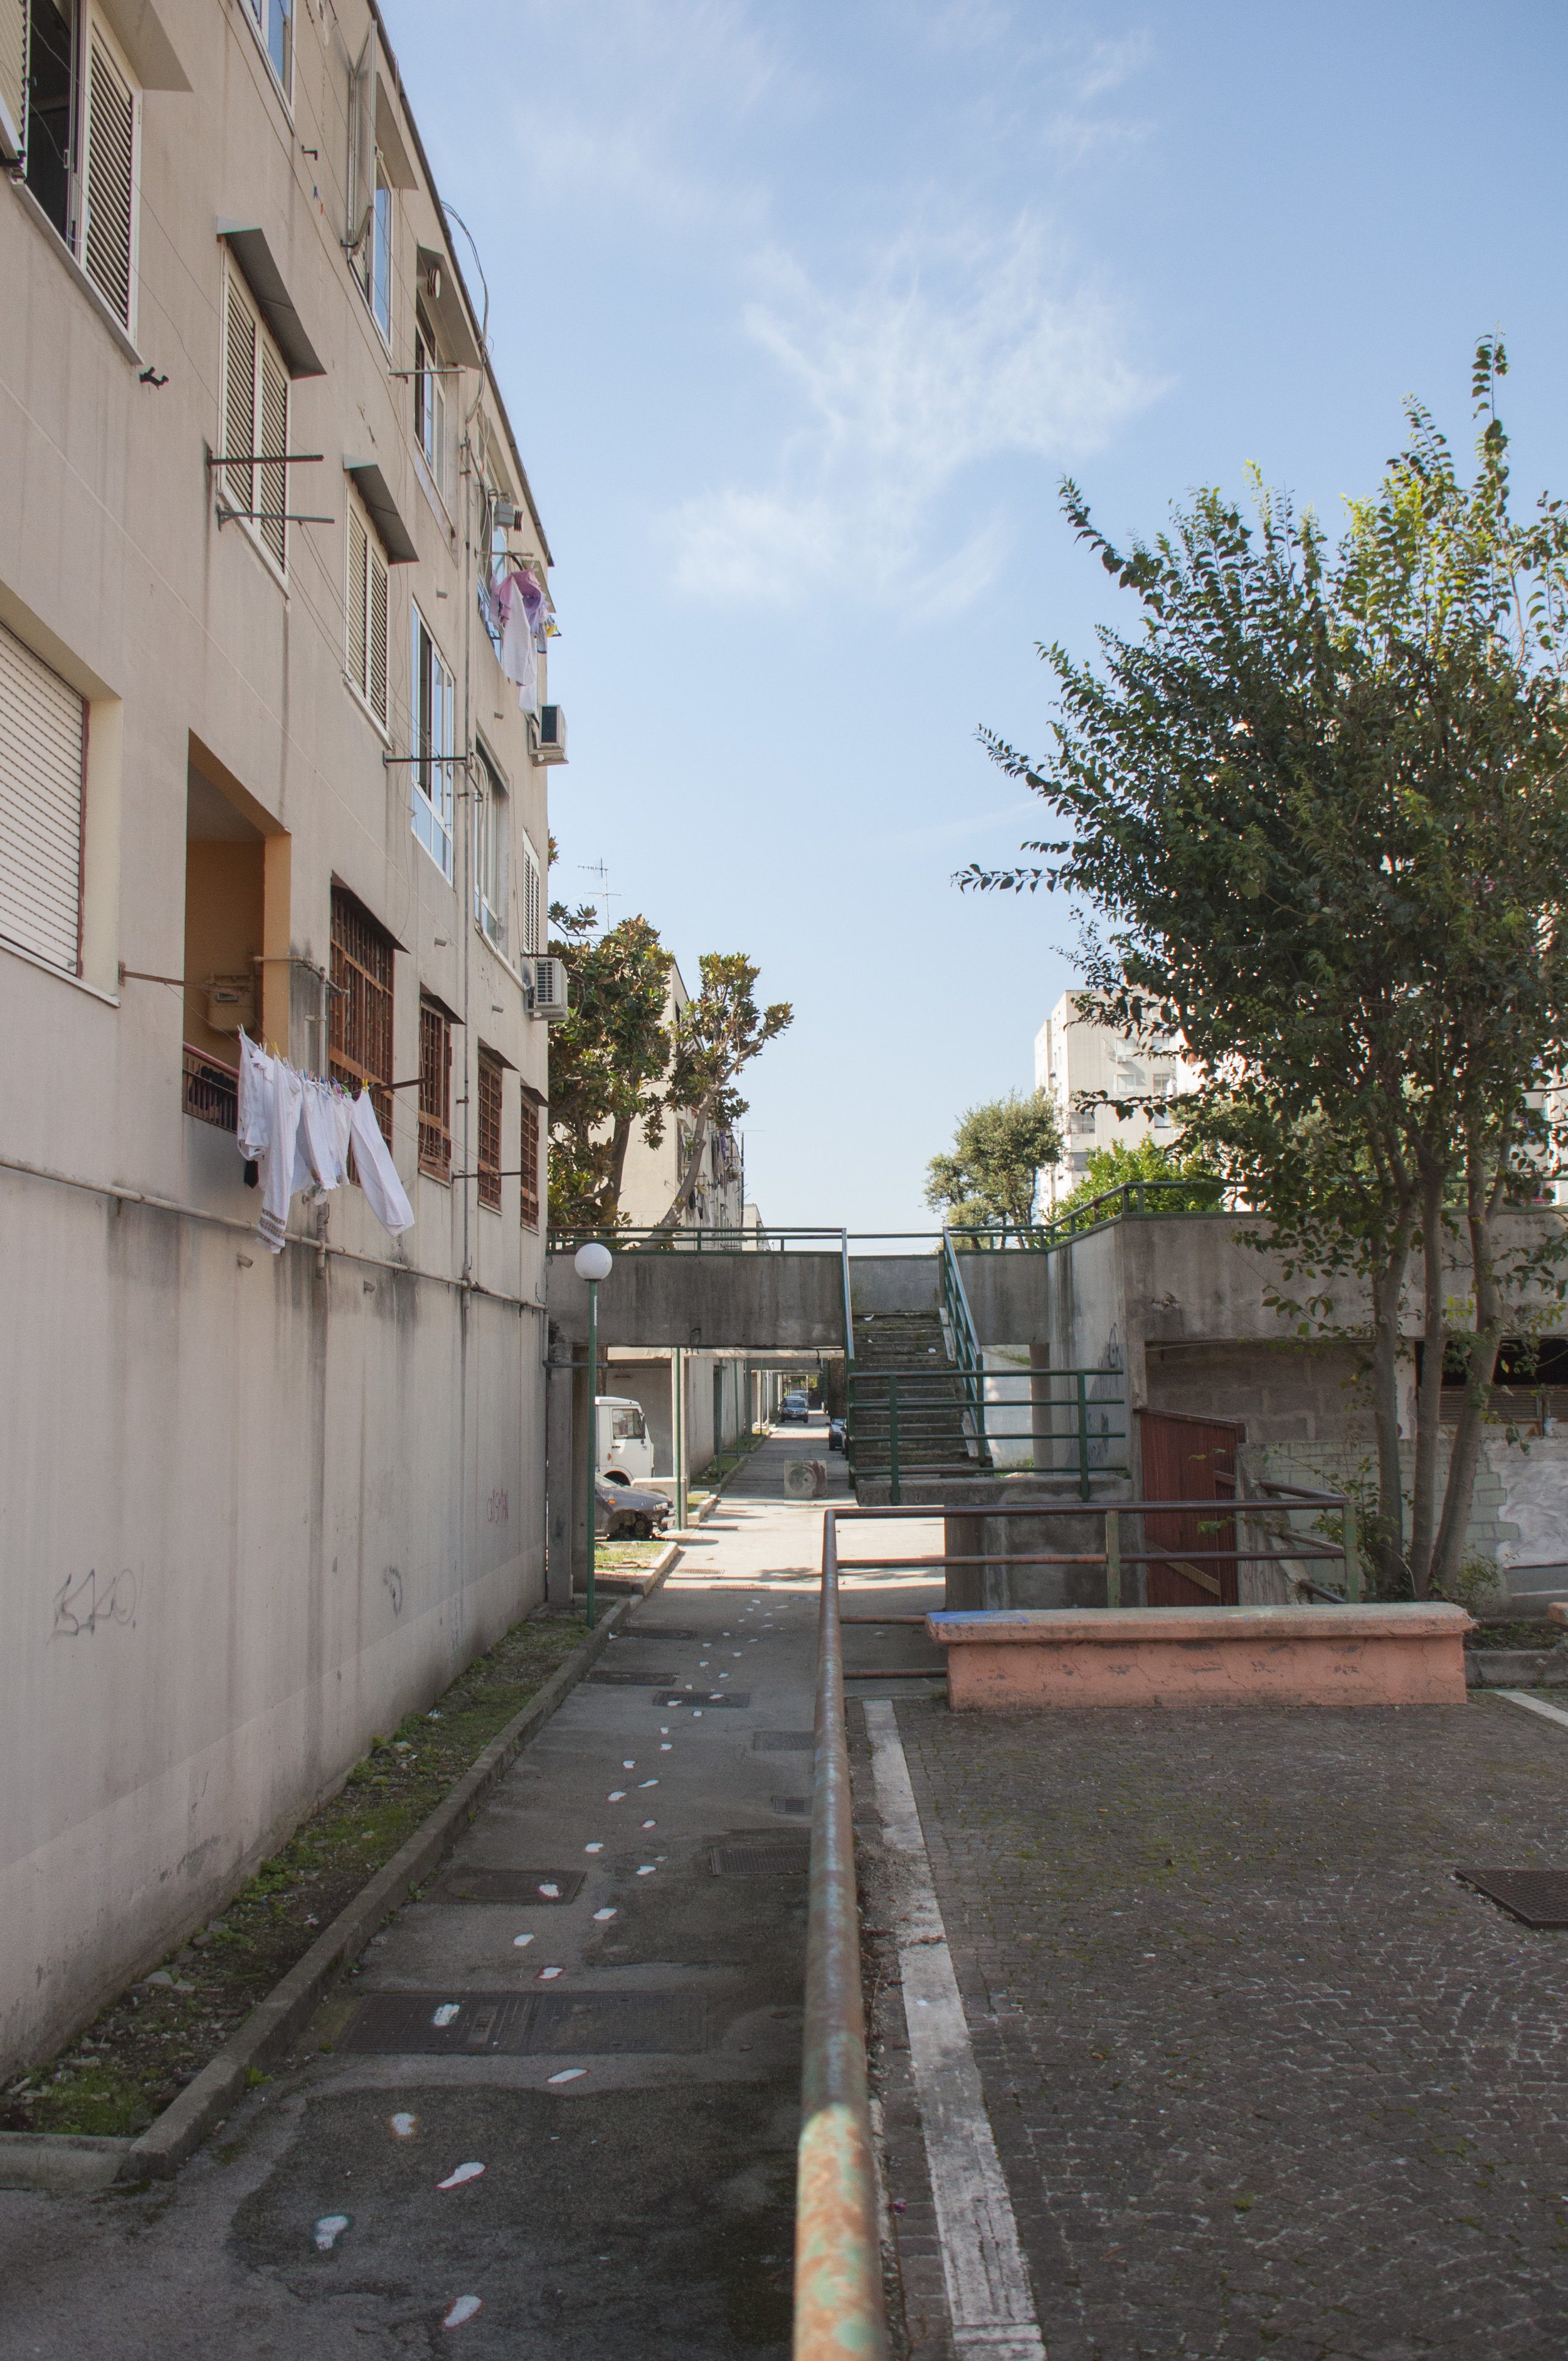 """The new Piazza di Spaccio, previously known in Naples to be a piazza for drug dealings. Located in front of the """"Officina delle Culture"""" in Scampia. Naples, Italy."""